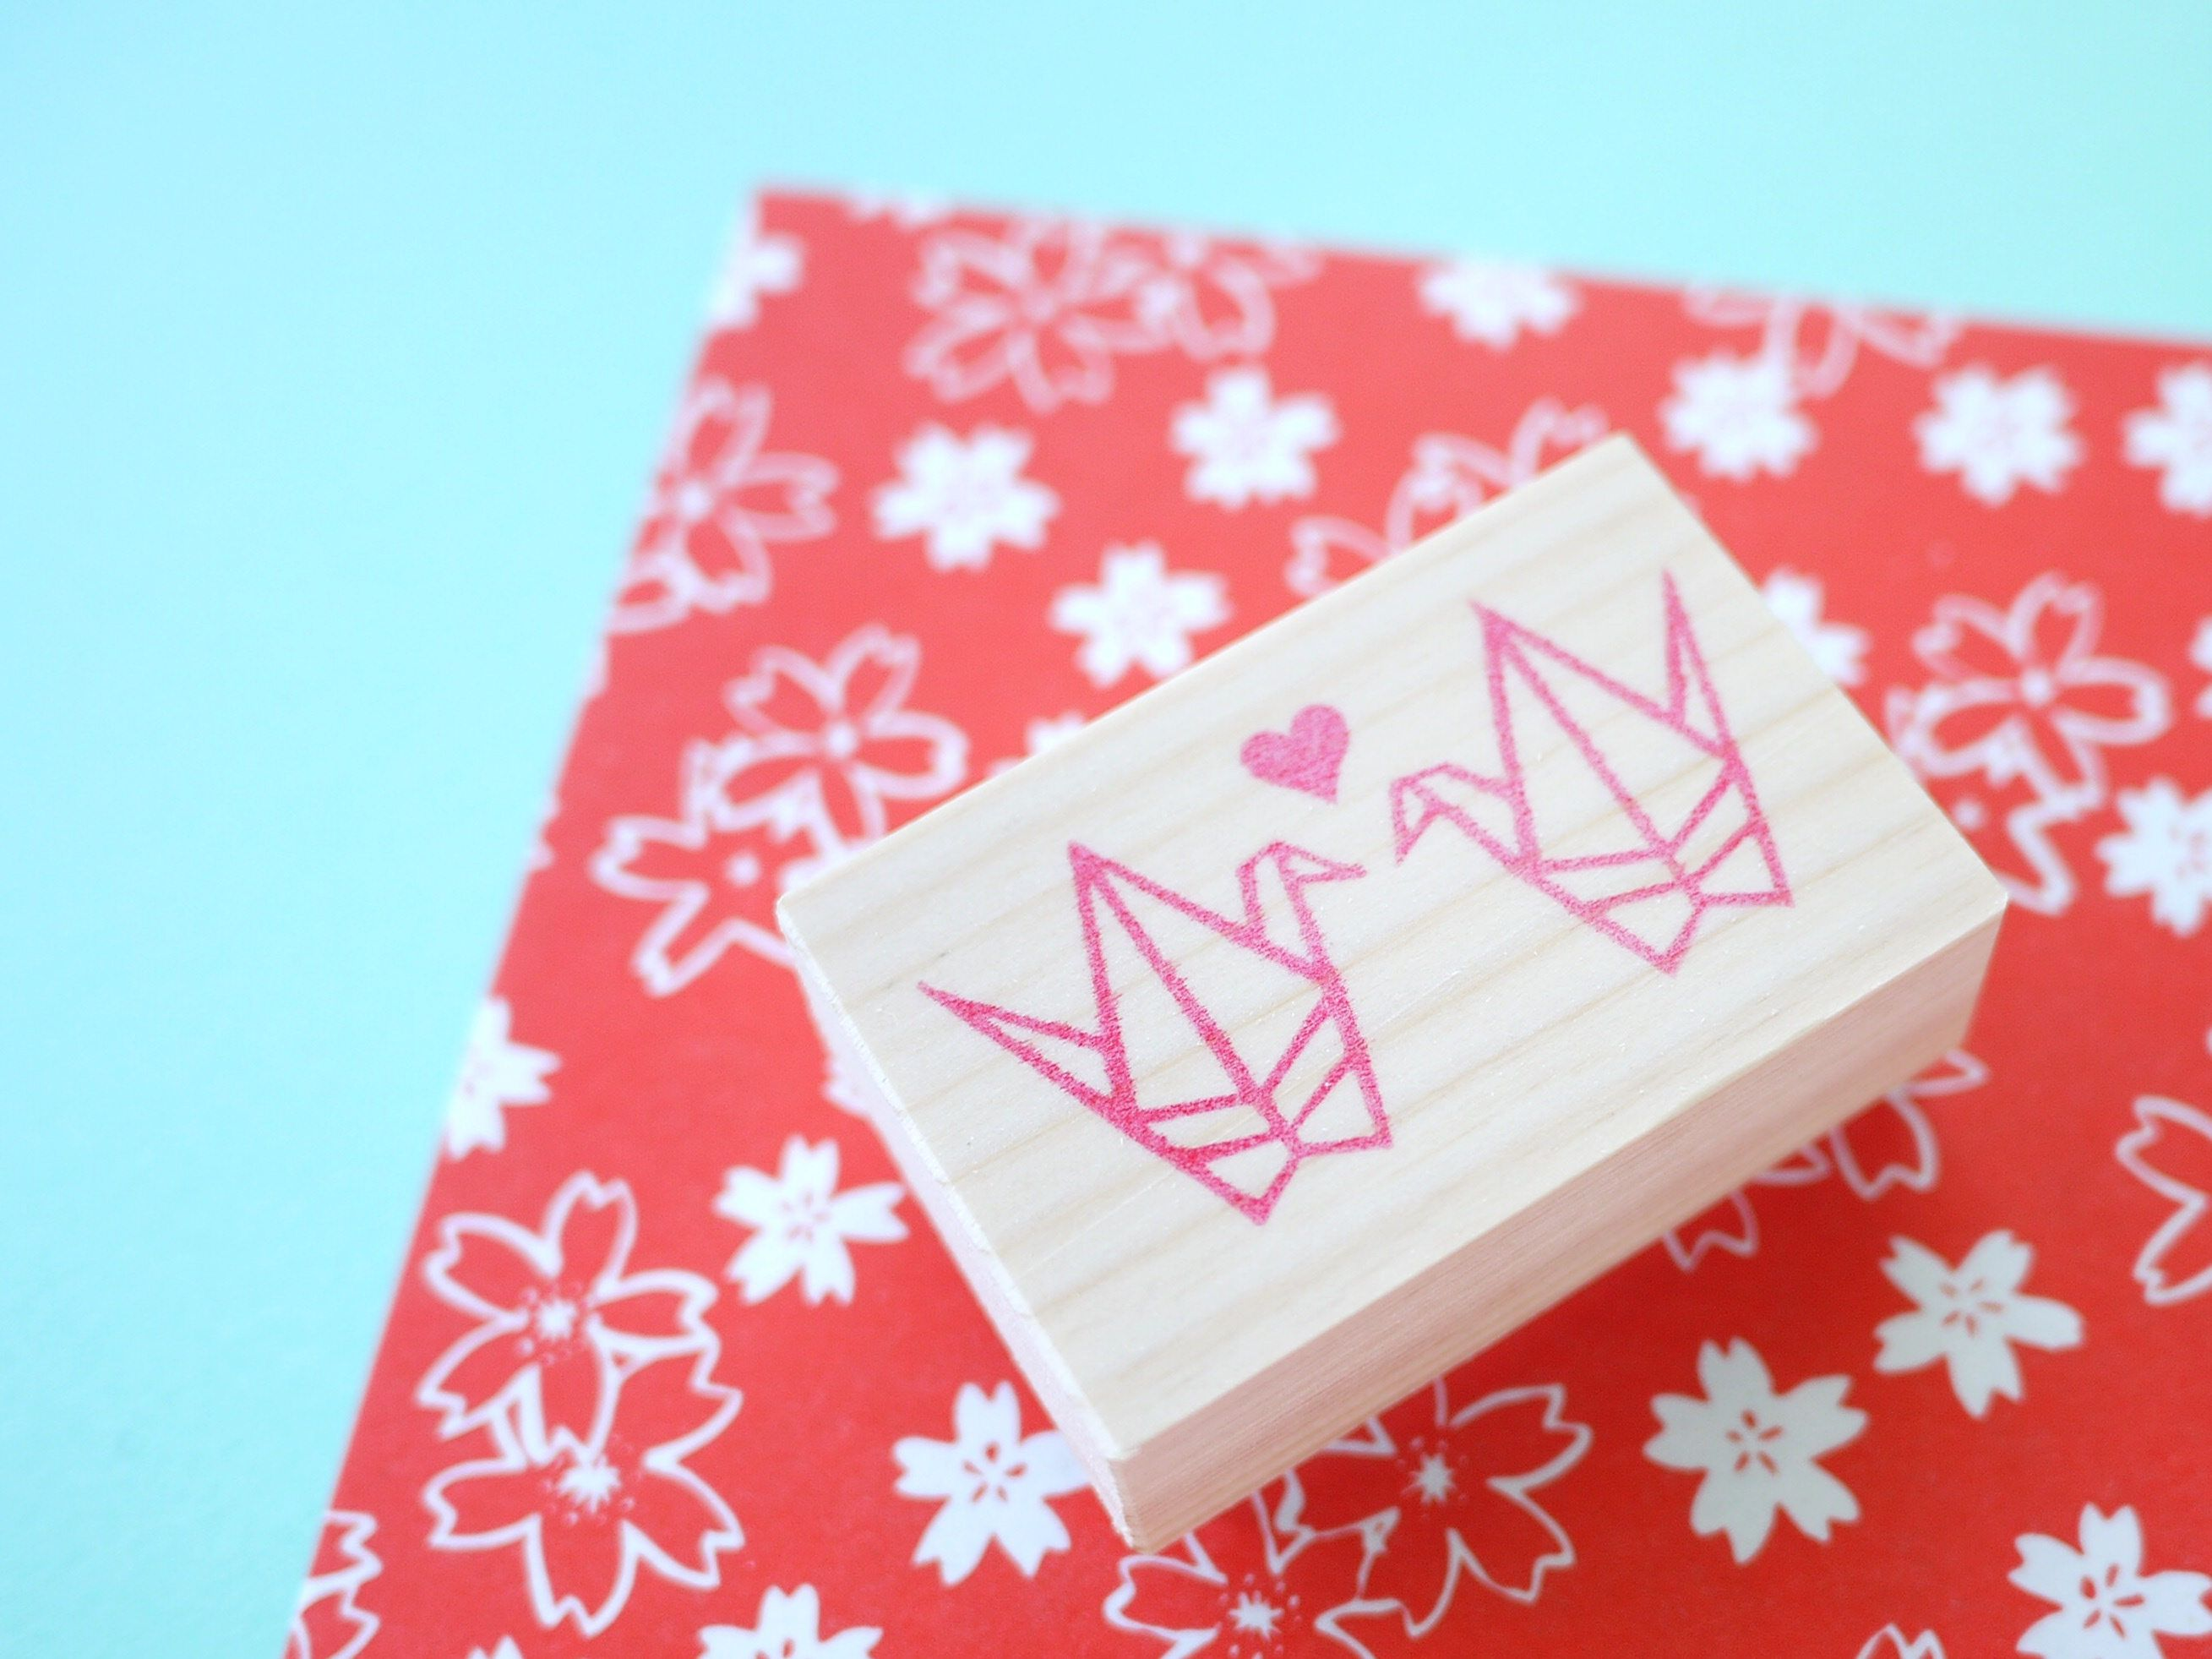 Origami crane, Crane stamp, Japanese stationery, Wedding invitations ...